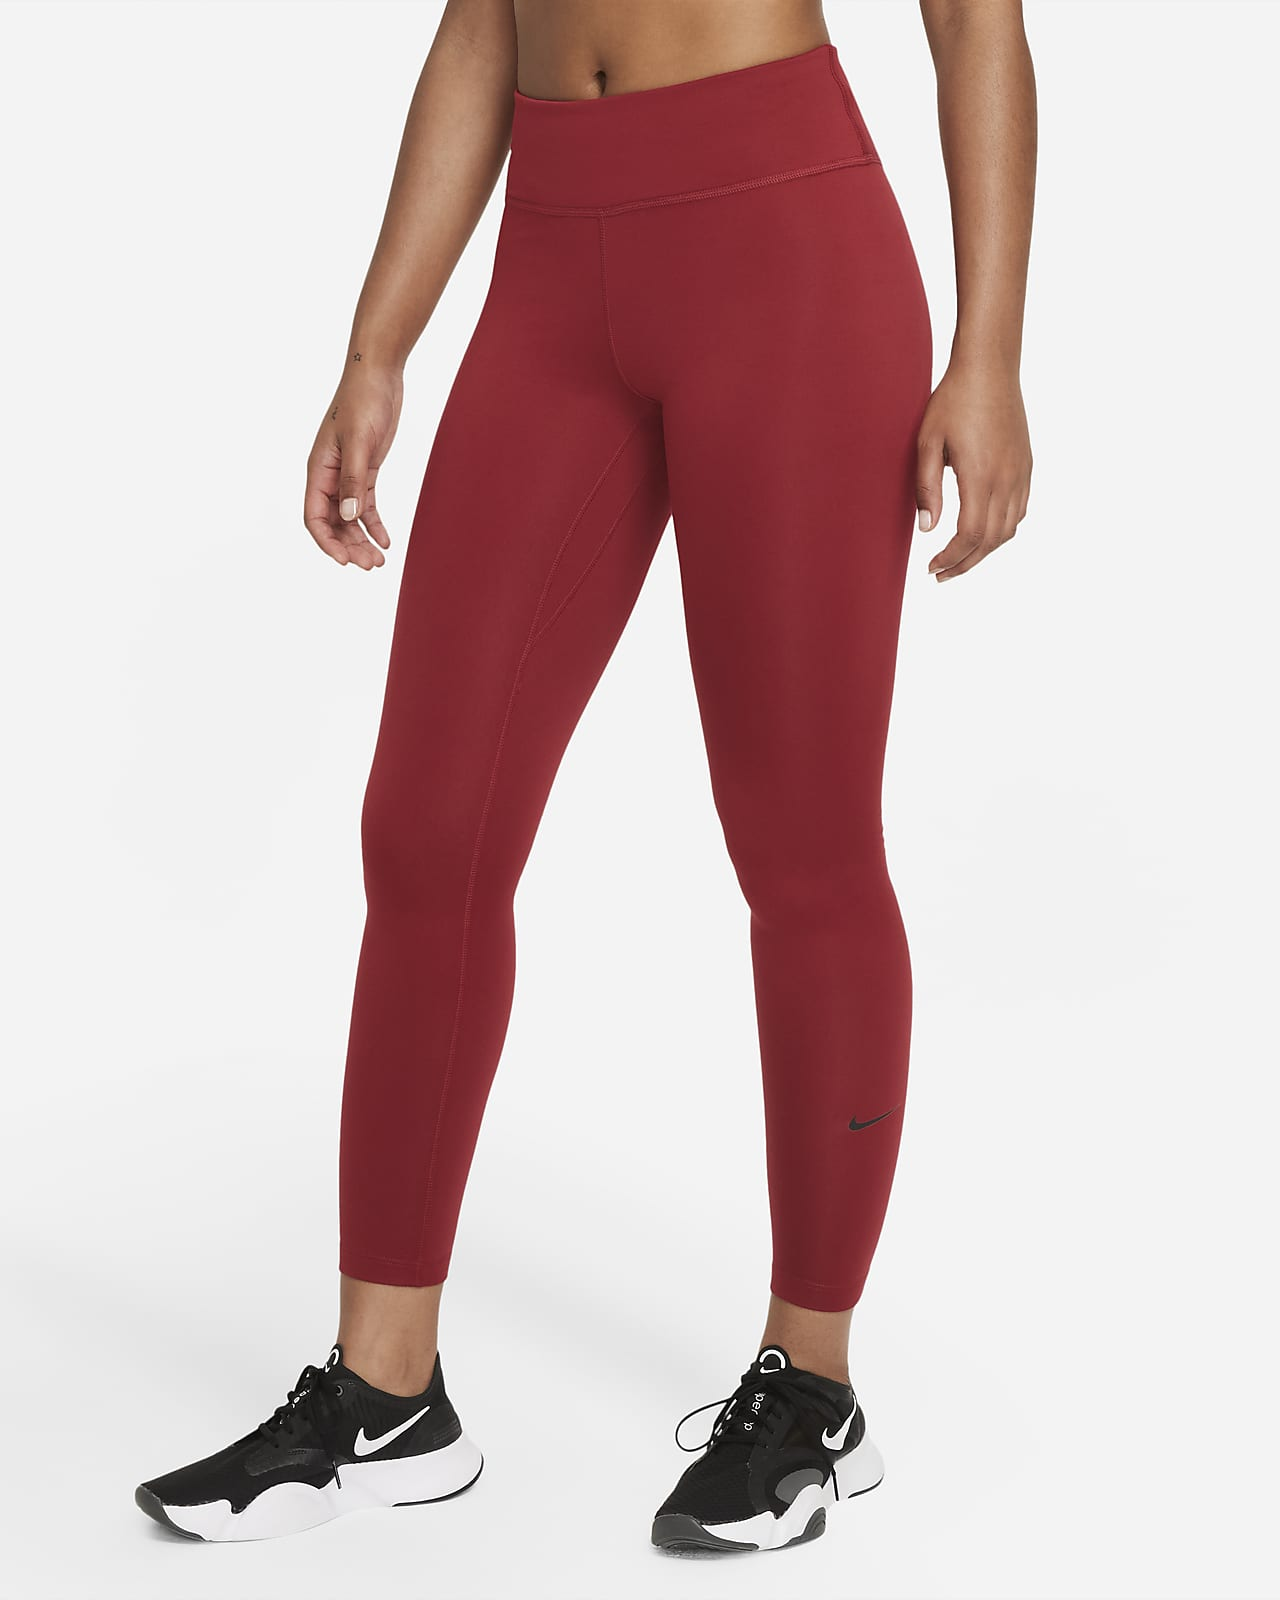 Nike Therma-FIT One Women's Mid-Rise Leggings